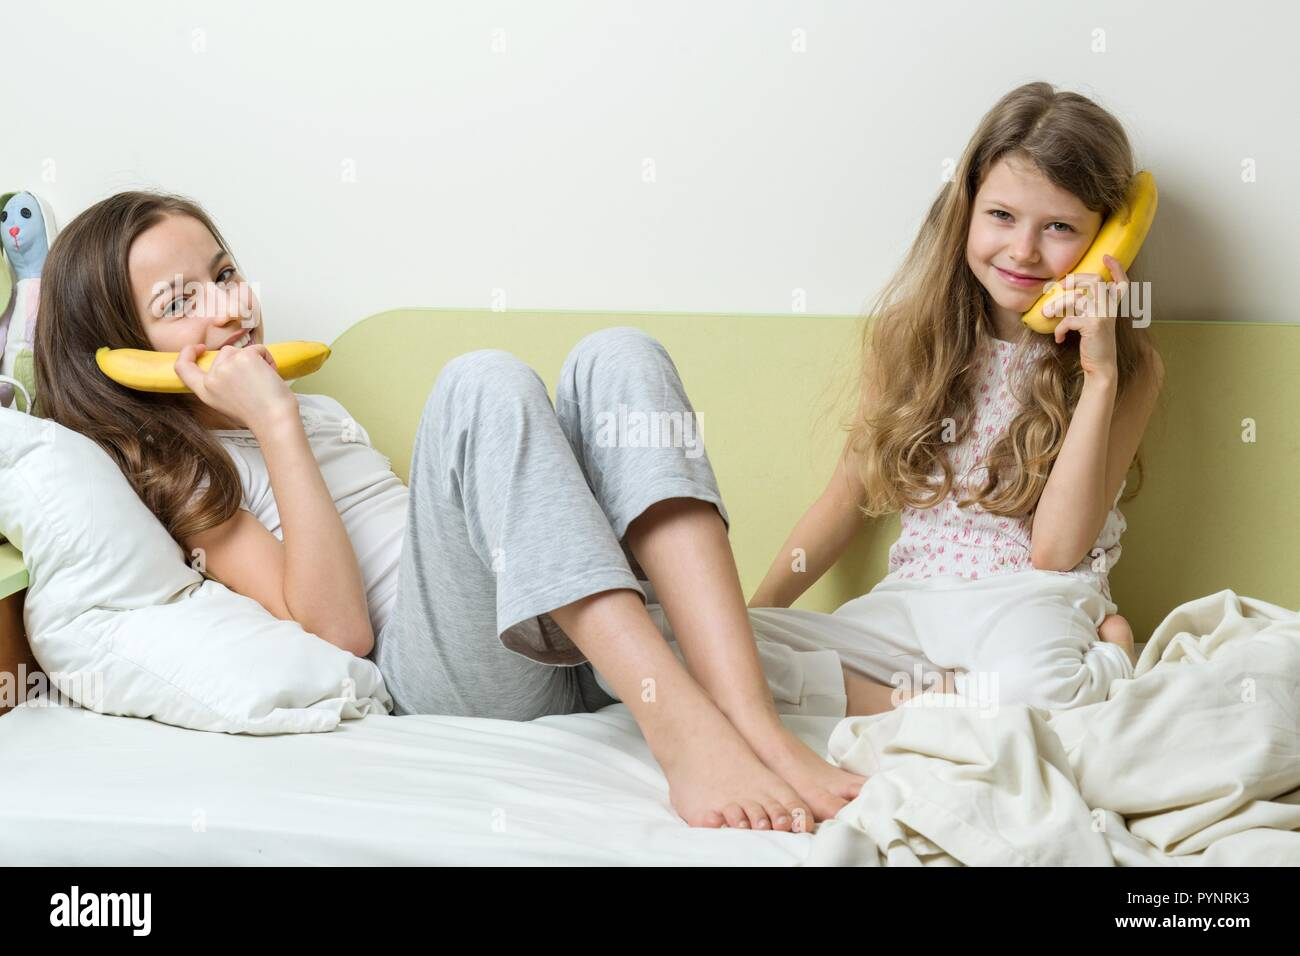 Two sister children in pajamas play in the morning in bed. Keep bananas as phones talking and laughing. - Stock Image